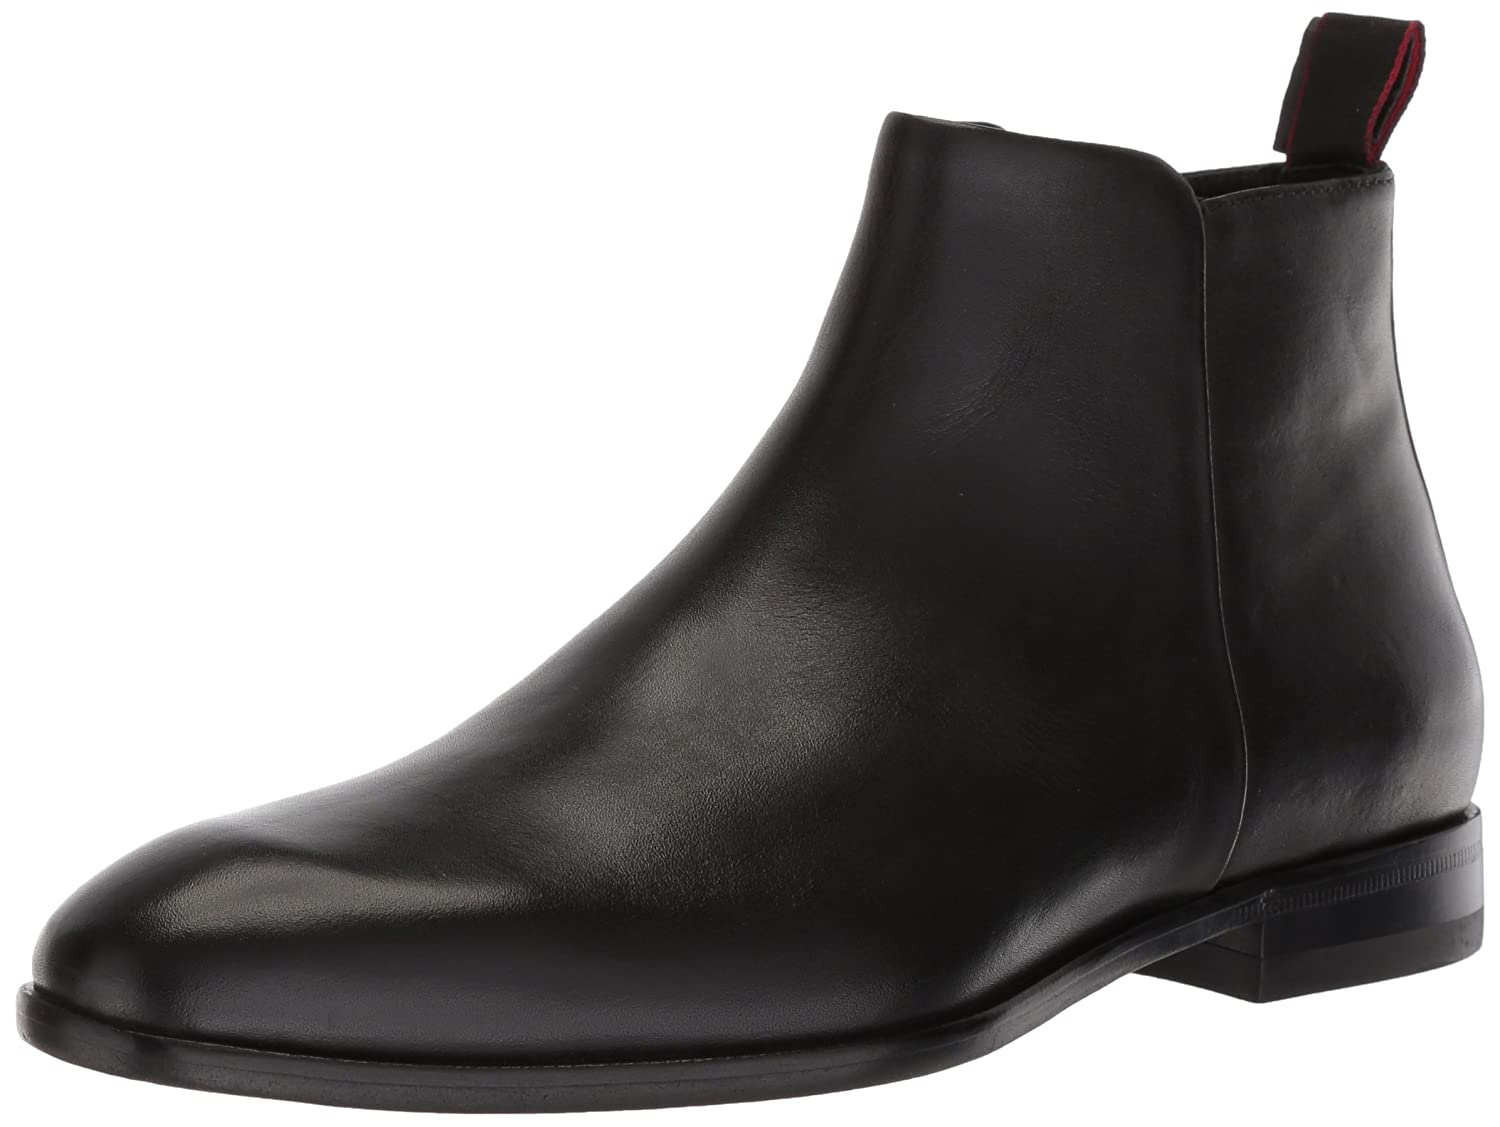 Hugo Boss Hugo Men's Dress Appeal Zip Boot Ankle HUGO by Hugo Boss 50383579